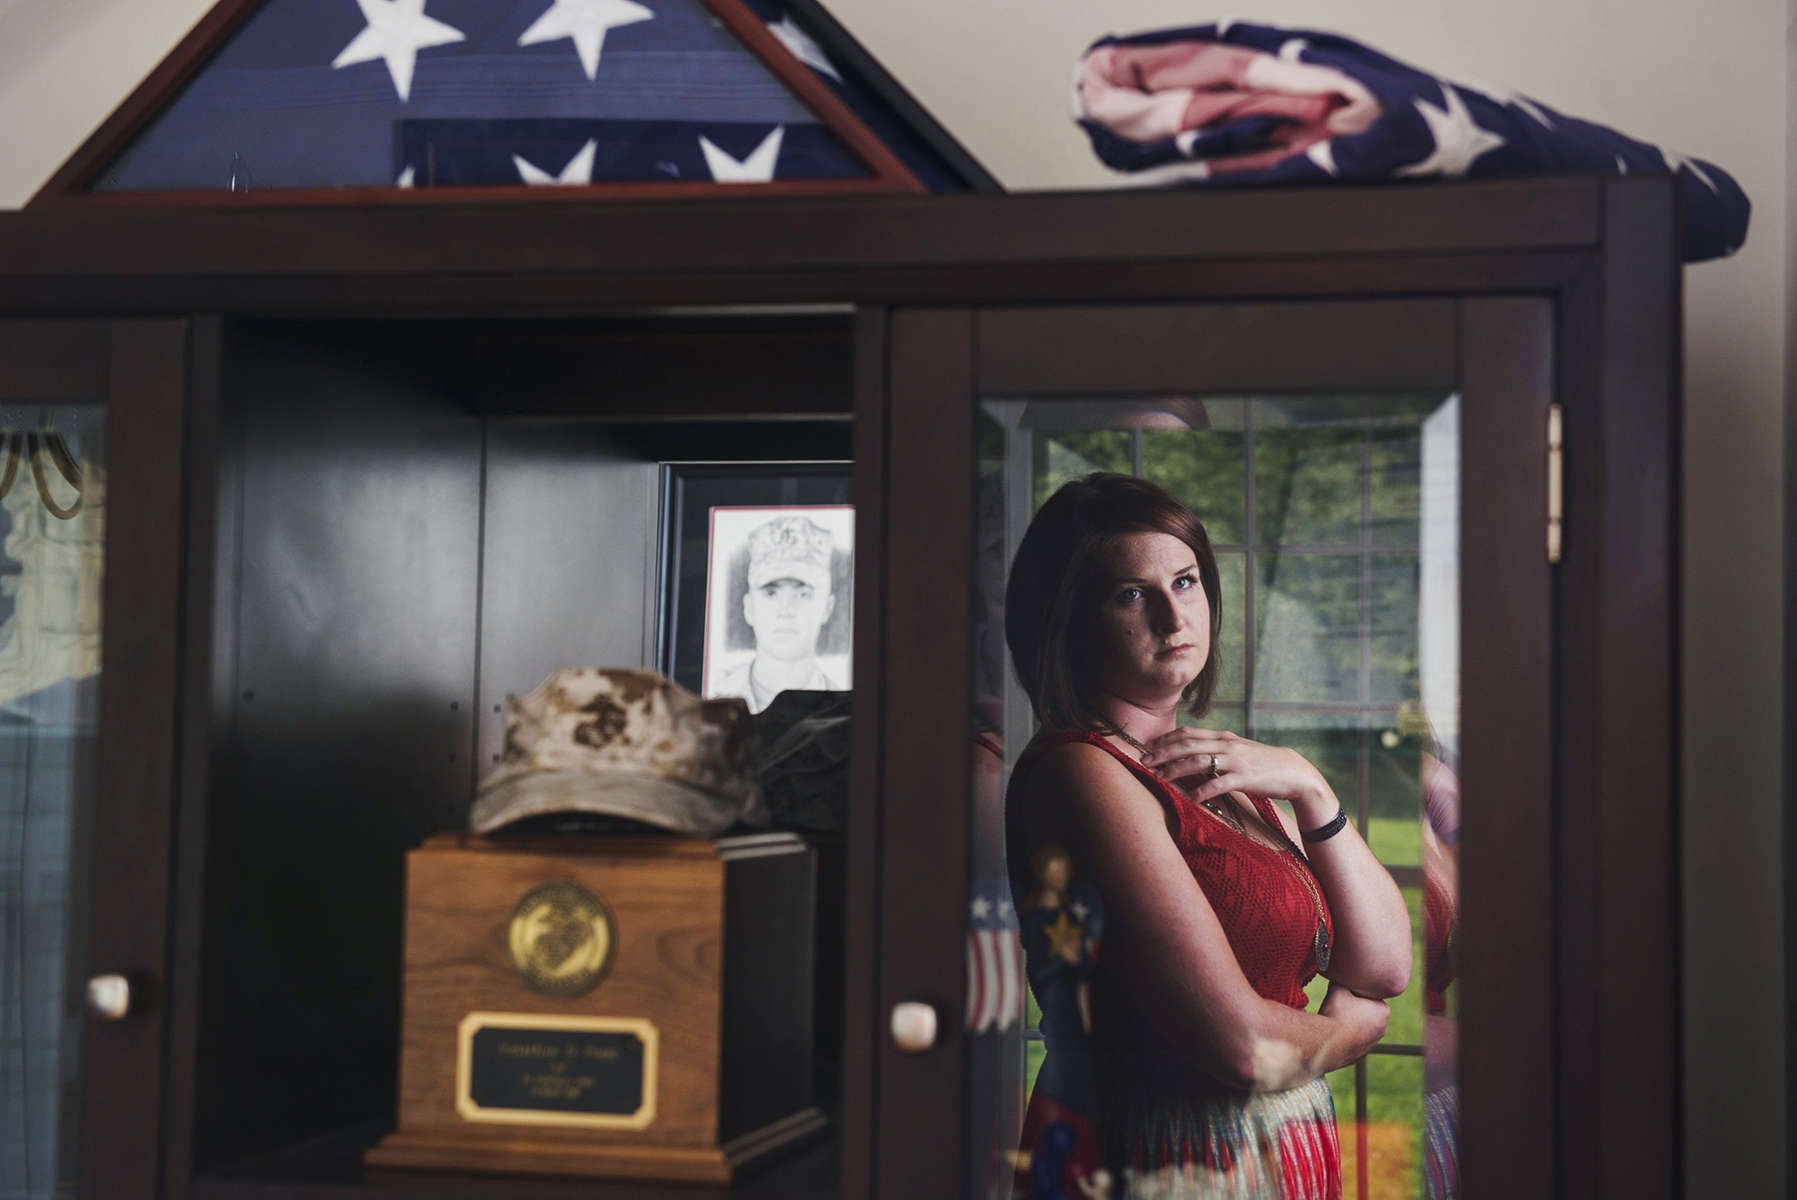 ABERDEEN, MD - AUGUST 6: Rachel Porto's husband Marine LCPL John Porto was killed in Afghanistan when his armored vehicle rolled over in a canal in 2010. Porto is now an advocate and guide to other war widows in pursuing their survivor benefits.  She is seen at her home in Aberdeen, MD on Monday, Aug. 6, 2014. (Photo by Amanda Voisard/For the Washington Post)